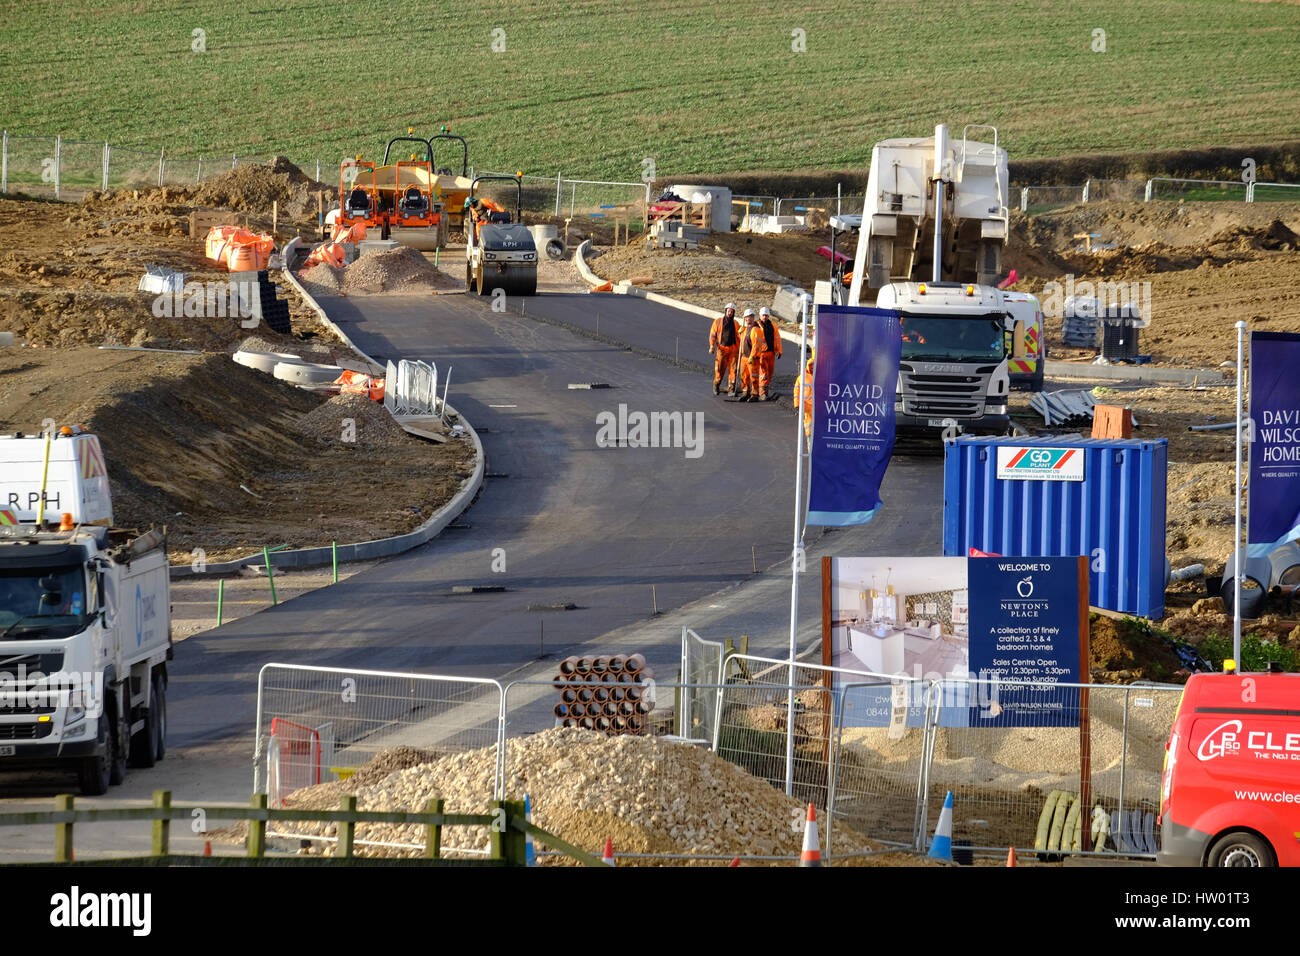 Construction of new road for access to a building site, Grantham, Lincolnshire, England, UK. - Stock Image